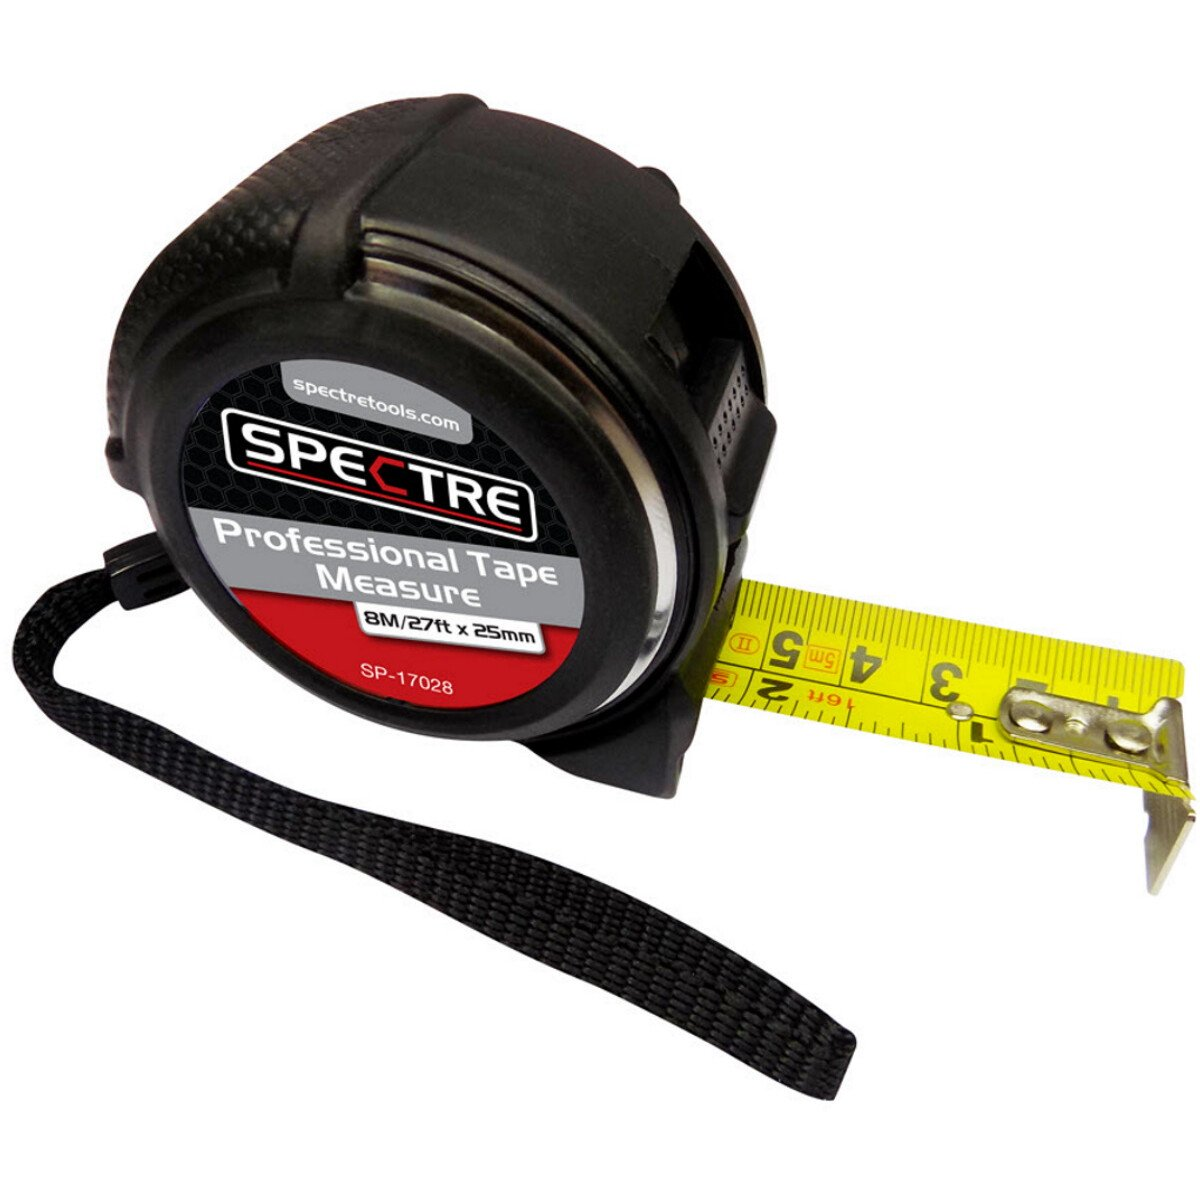 Spectre SP-17028 Professional Plus 8m/26ft x 25mm Dual-Marked Steel Tape Measure